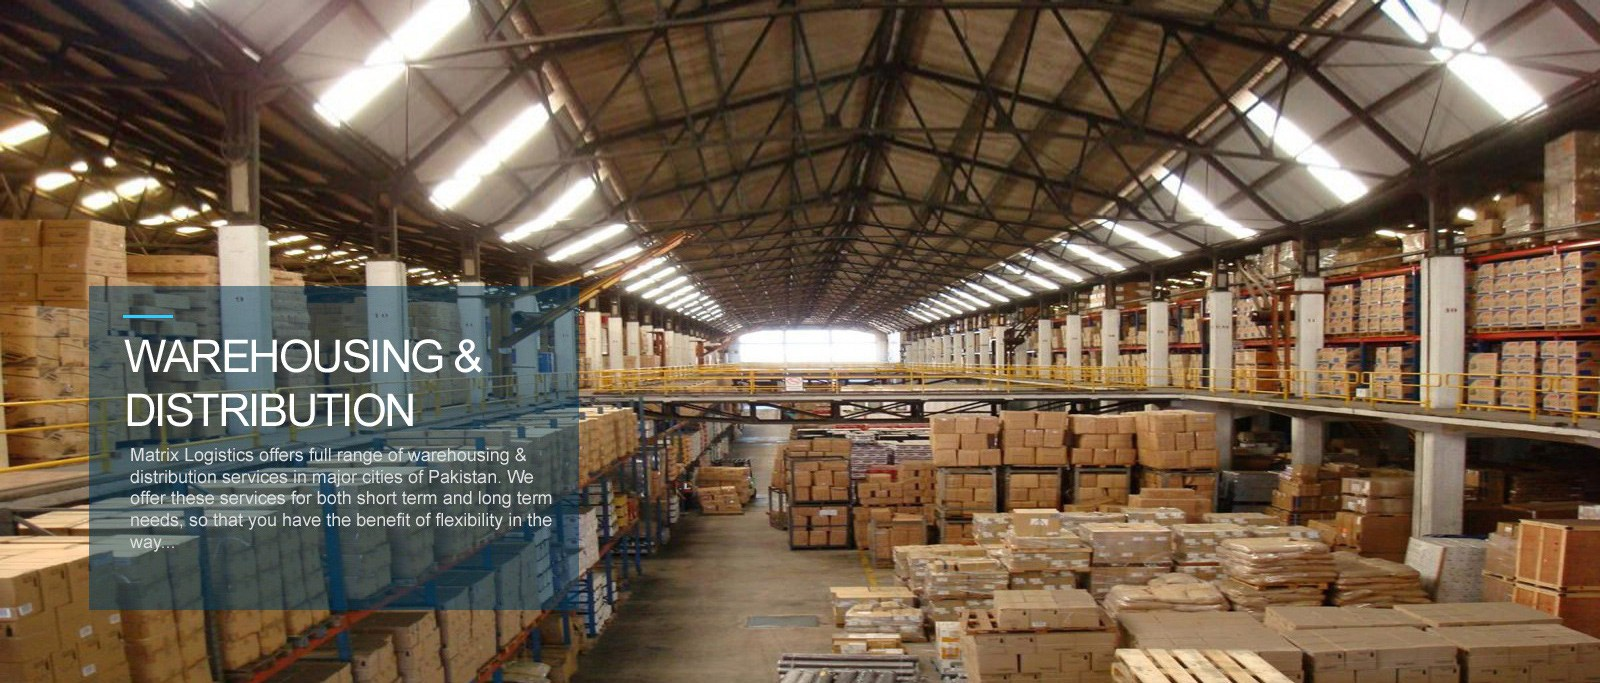 Matrix-Logistics-Warehousing